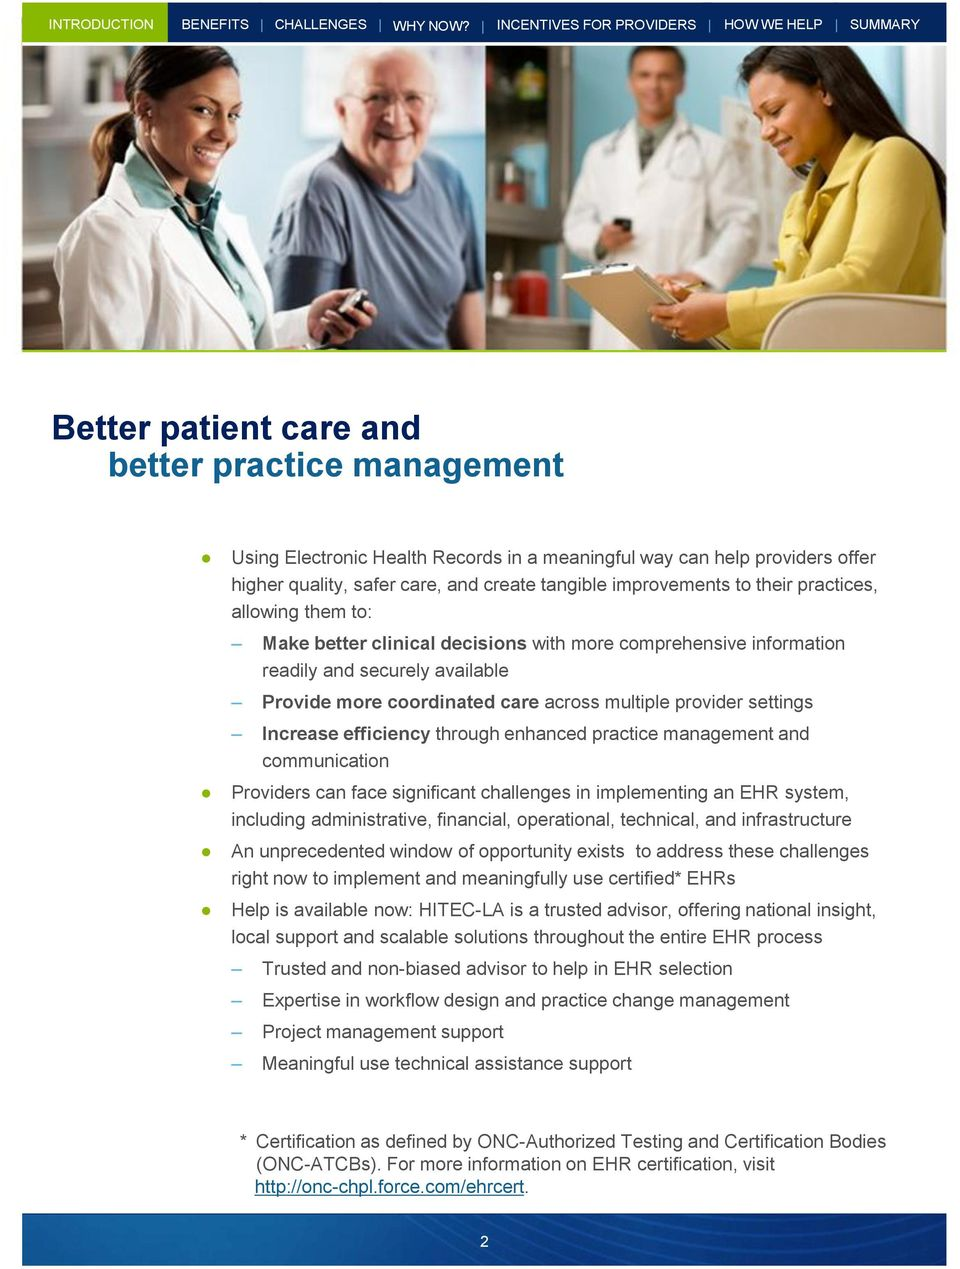 care, and create tangible improvements to their practices, allowing them to: Make better clinical decisions with more comprehensive information readily and securely available Provide more coordinated